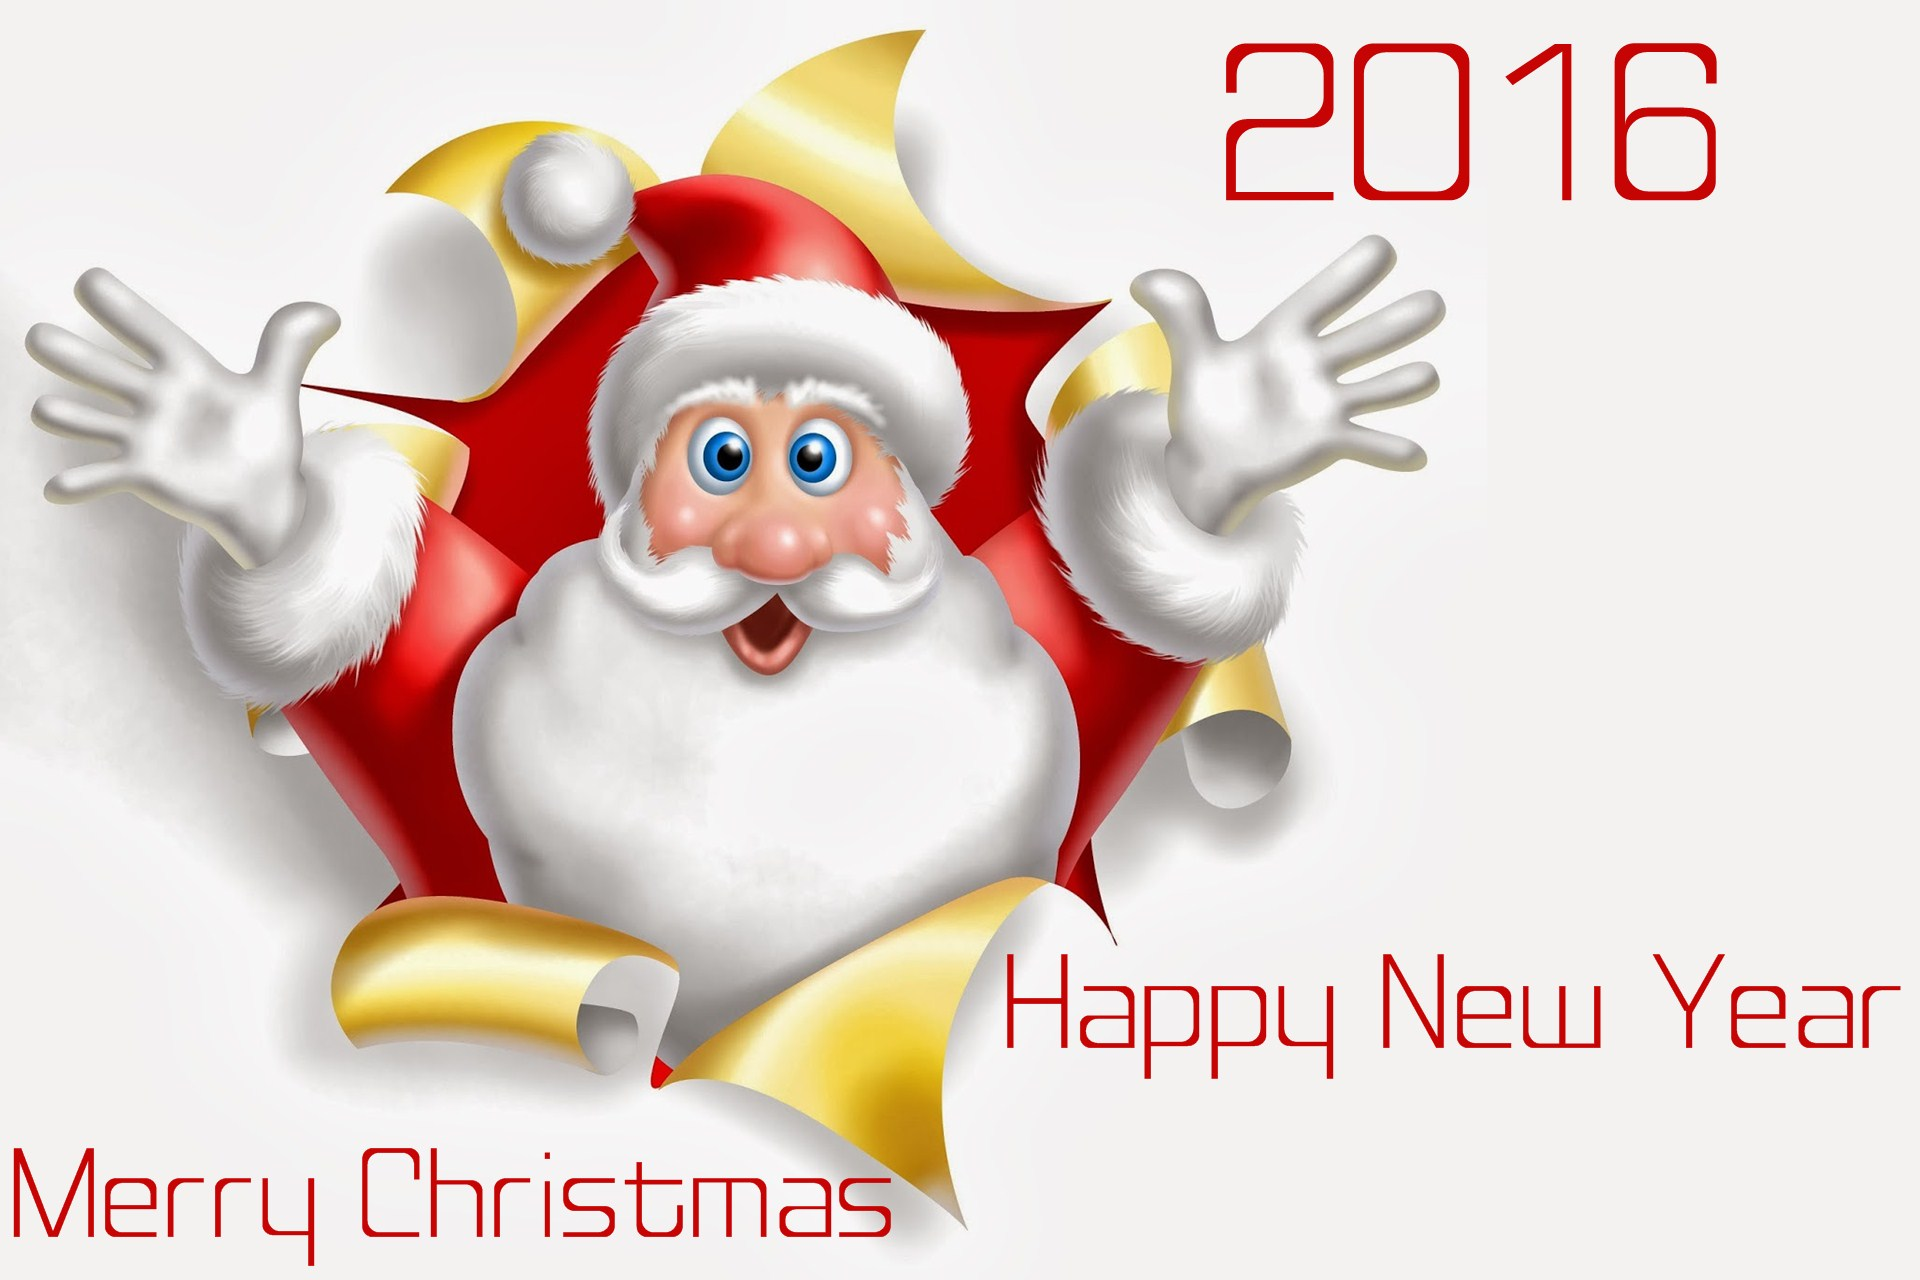 Christmas 2016 Wishes, Images, Messages for WhatsApp